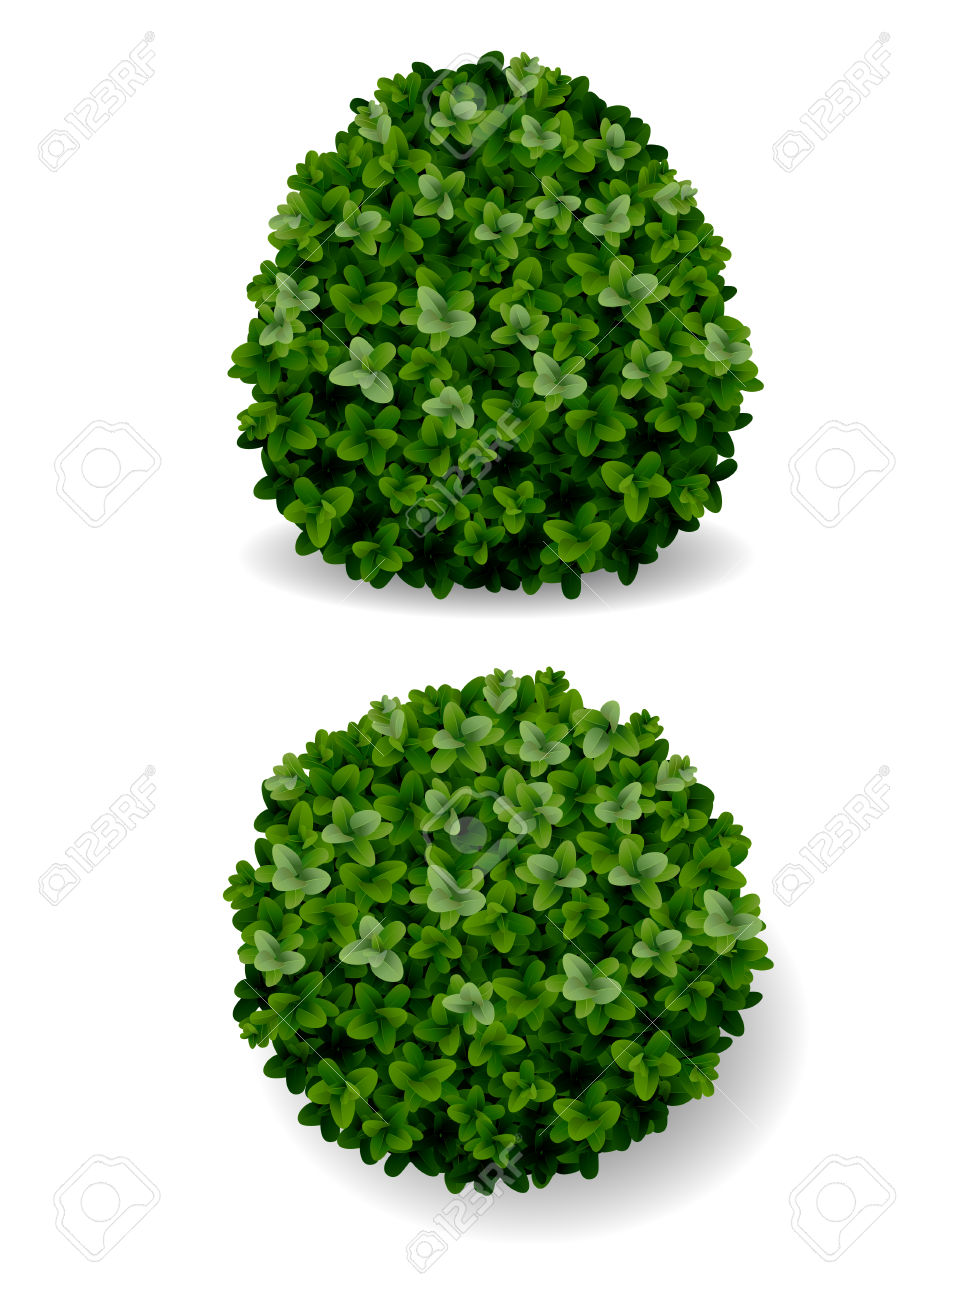 252 Boxwood Stock Illustrations, Cliparts And Royalty Free Boxwood.